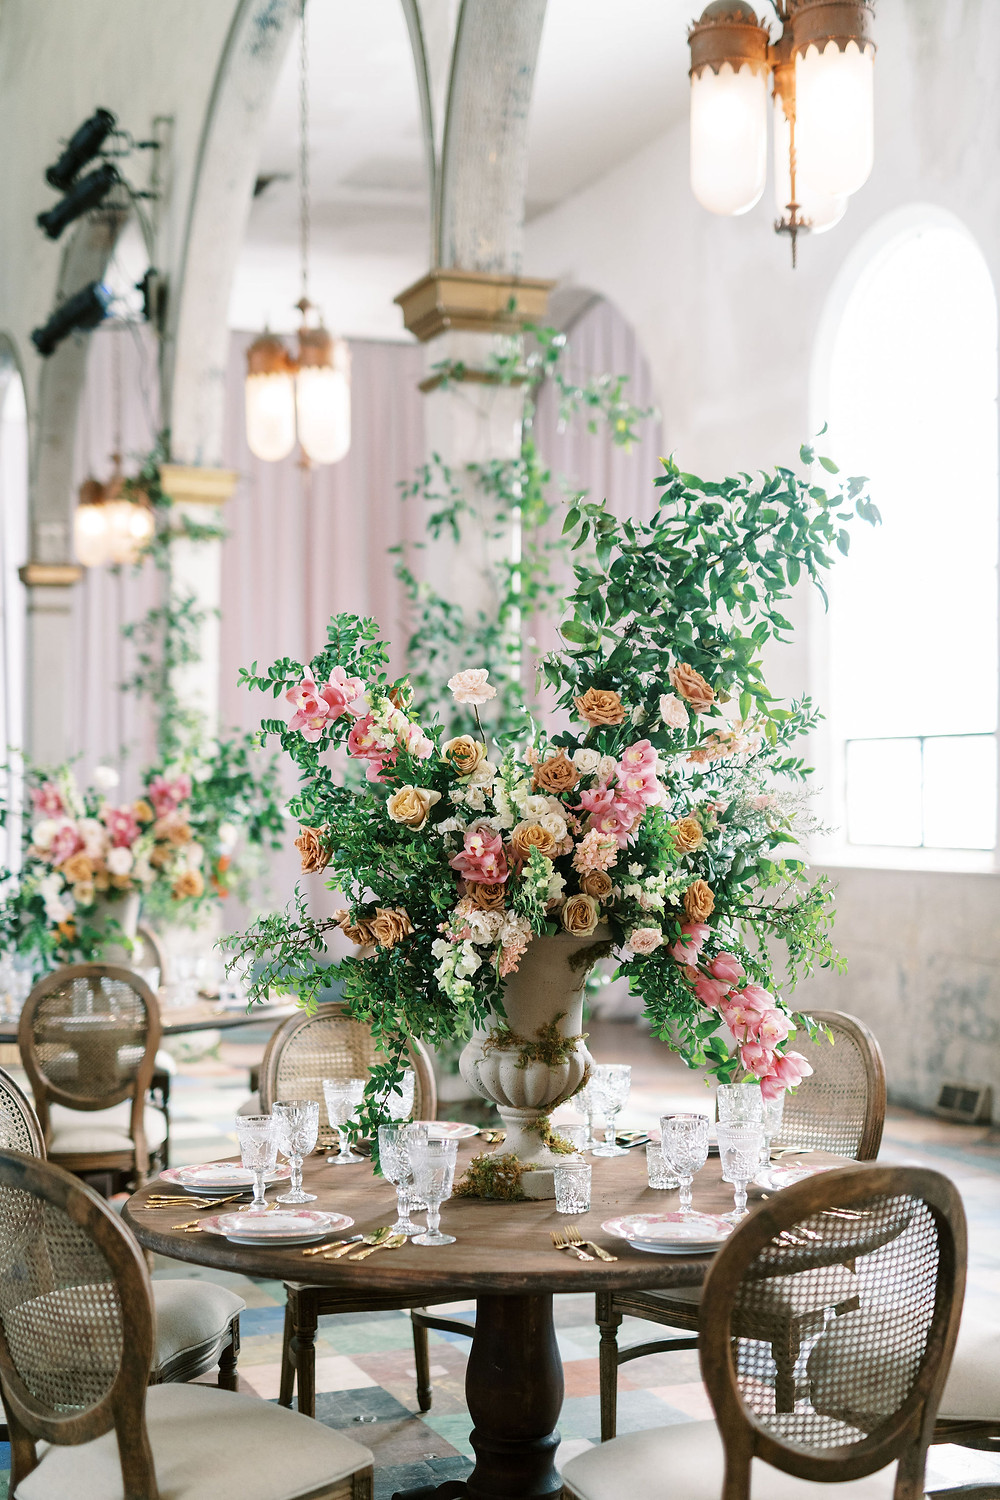 Leaf + Petal, New Orleans, Marigny Opera House, smilax columns, greenery wedding, English garden flowers, garden urns, reception, Bridgerton wedding